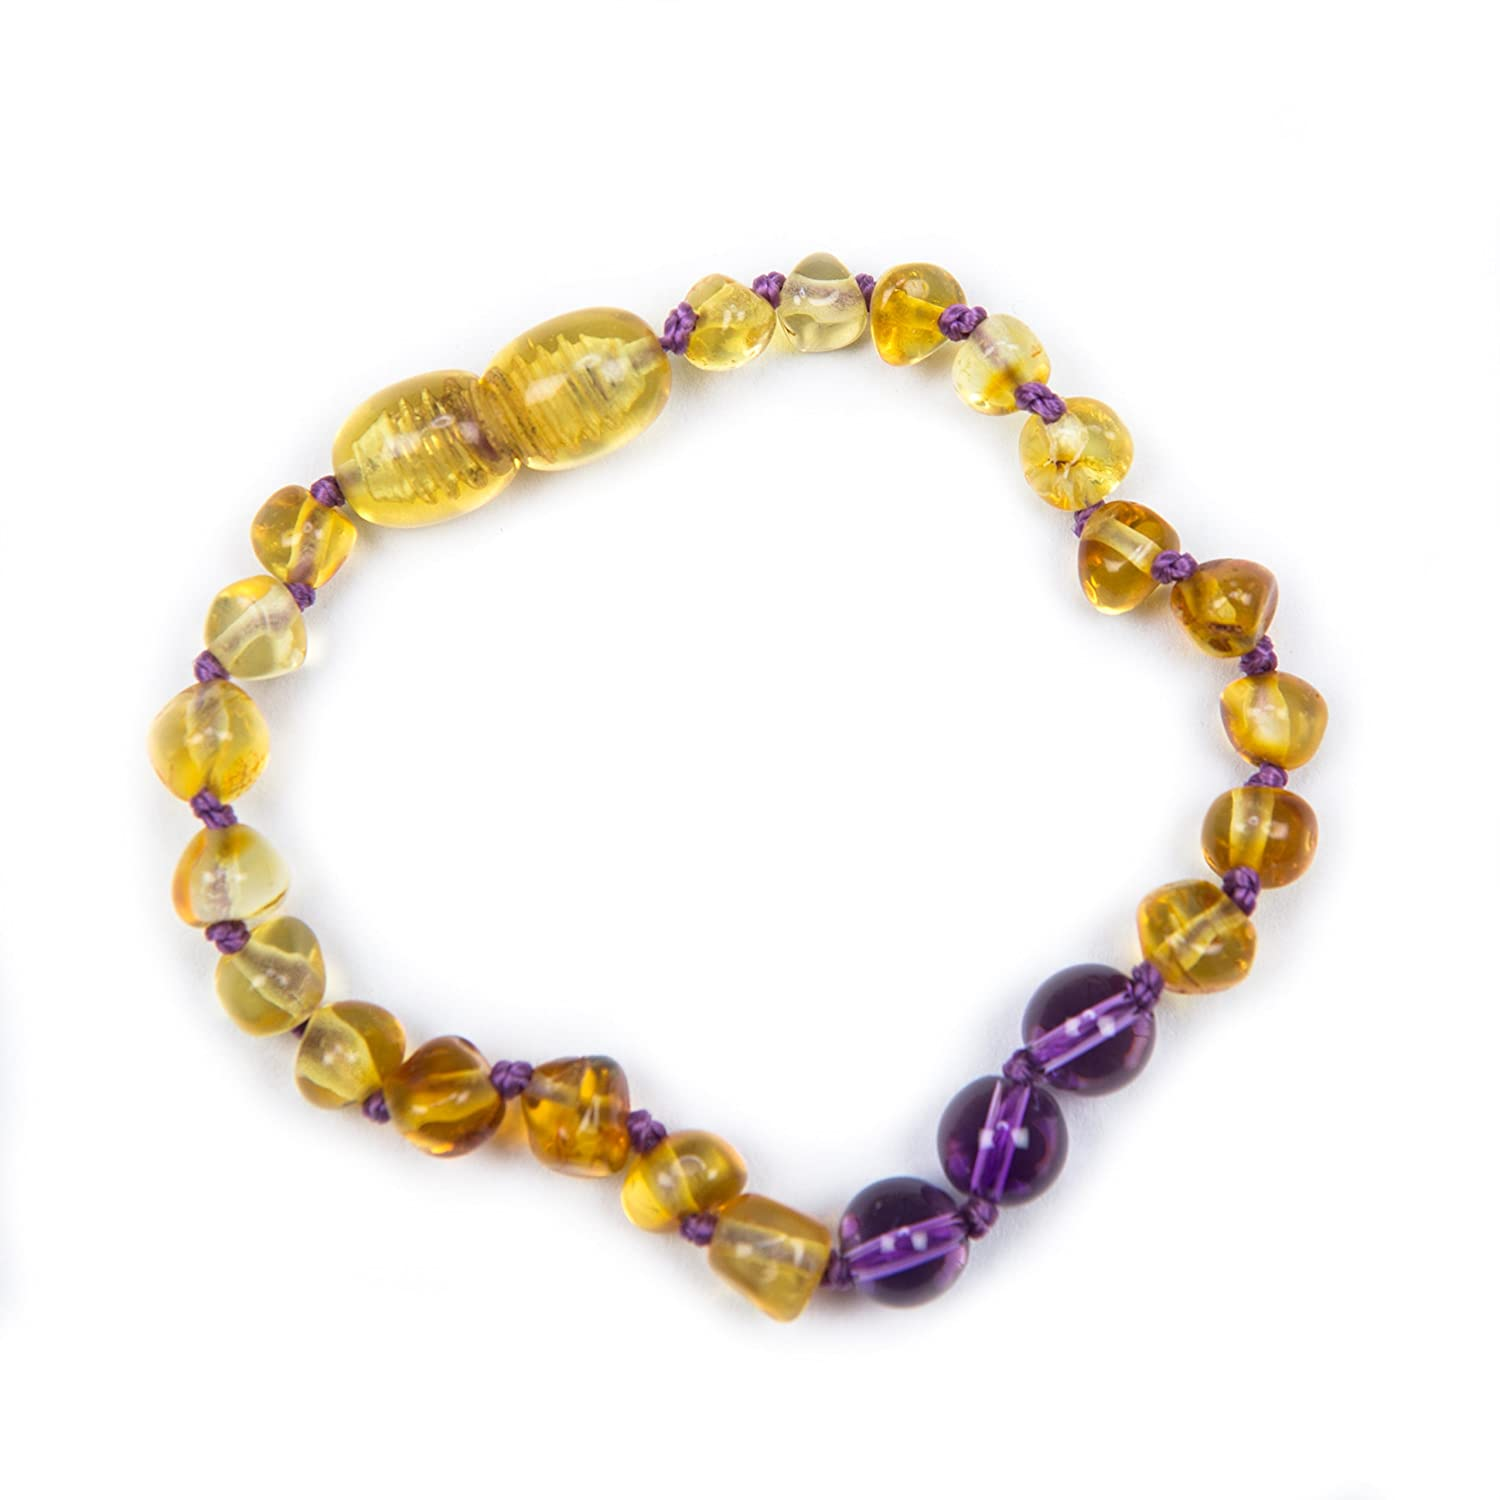 100% Genuine Baltic Amber & Semi Precious Anklet Bracelet Lemon Honey Amethyst sizes 12cm 13cm 14cm 15cm 16cm 18cm. Free UK Delivery. Money Back Guarantee J's Amber Cognac